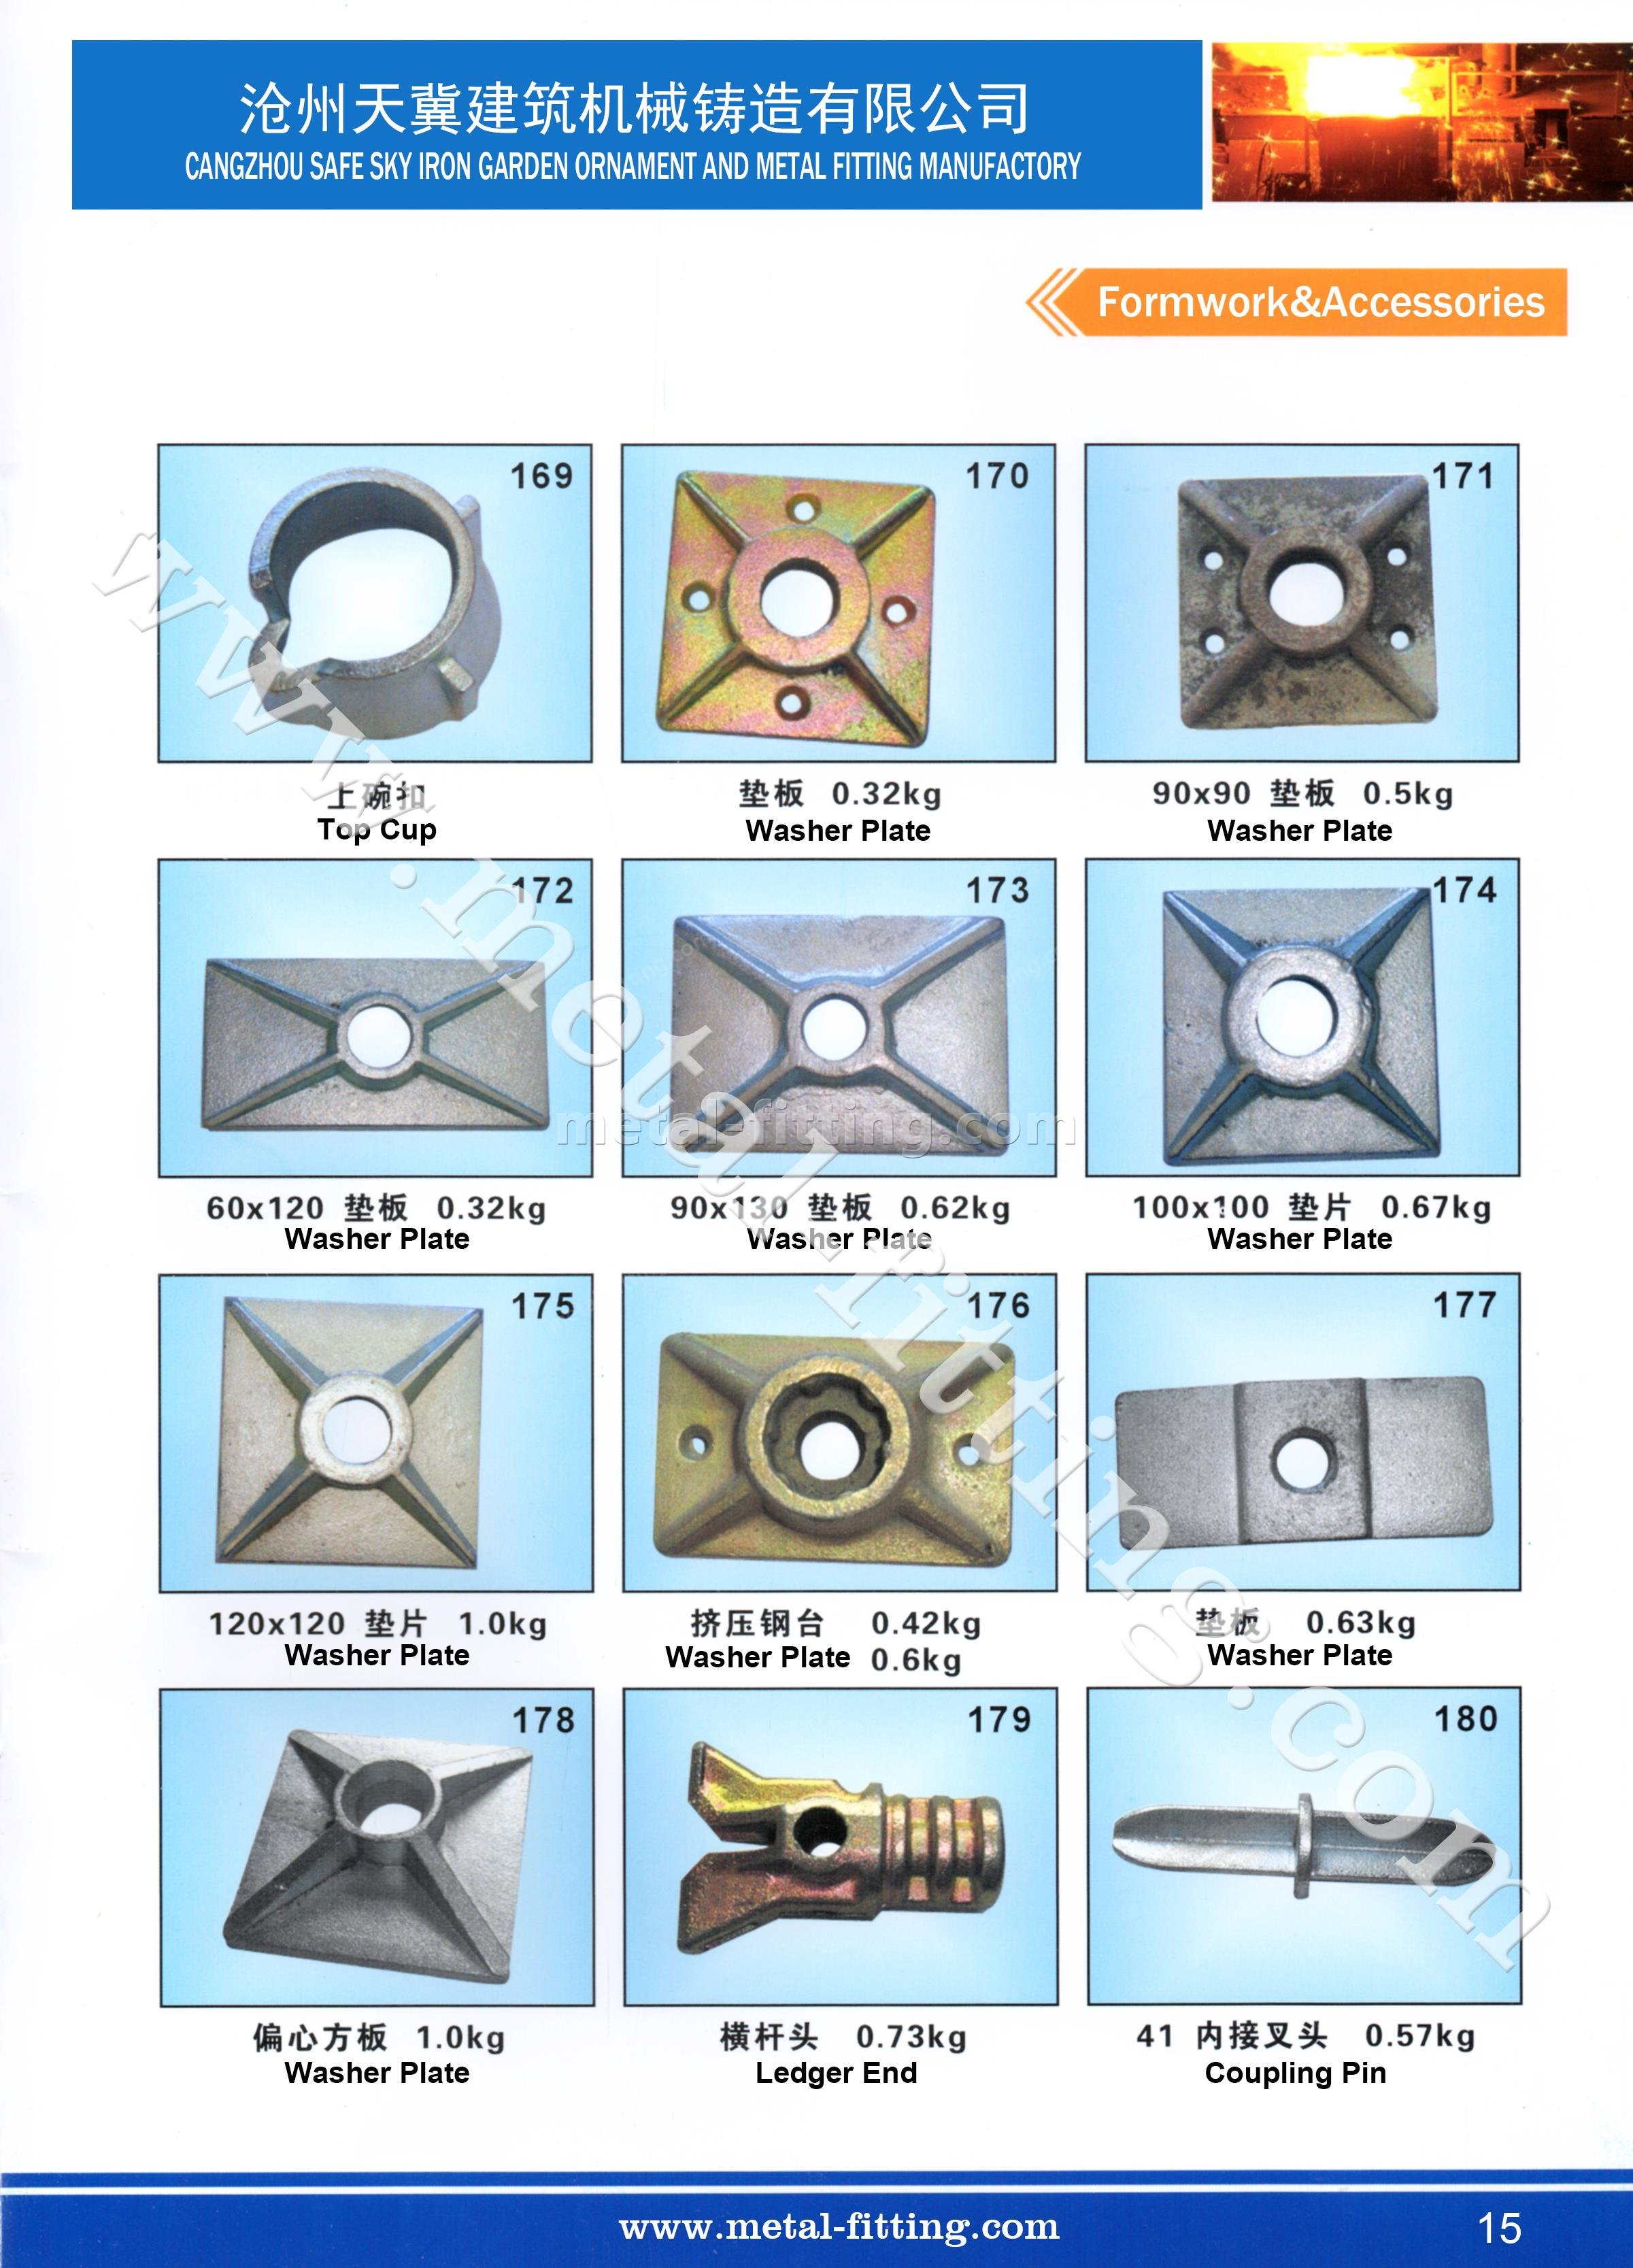 casting steel metal fitting, scaffolding system-15